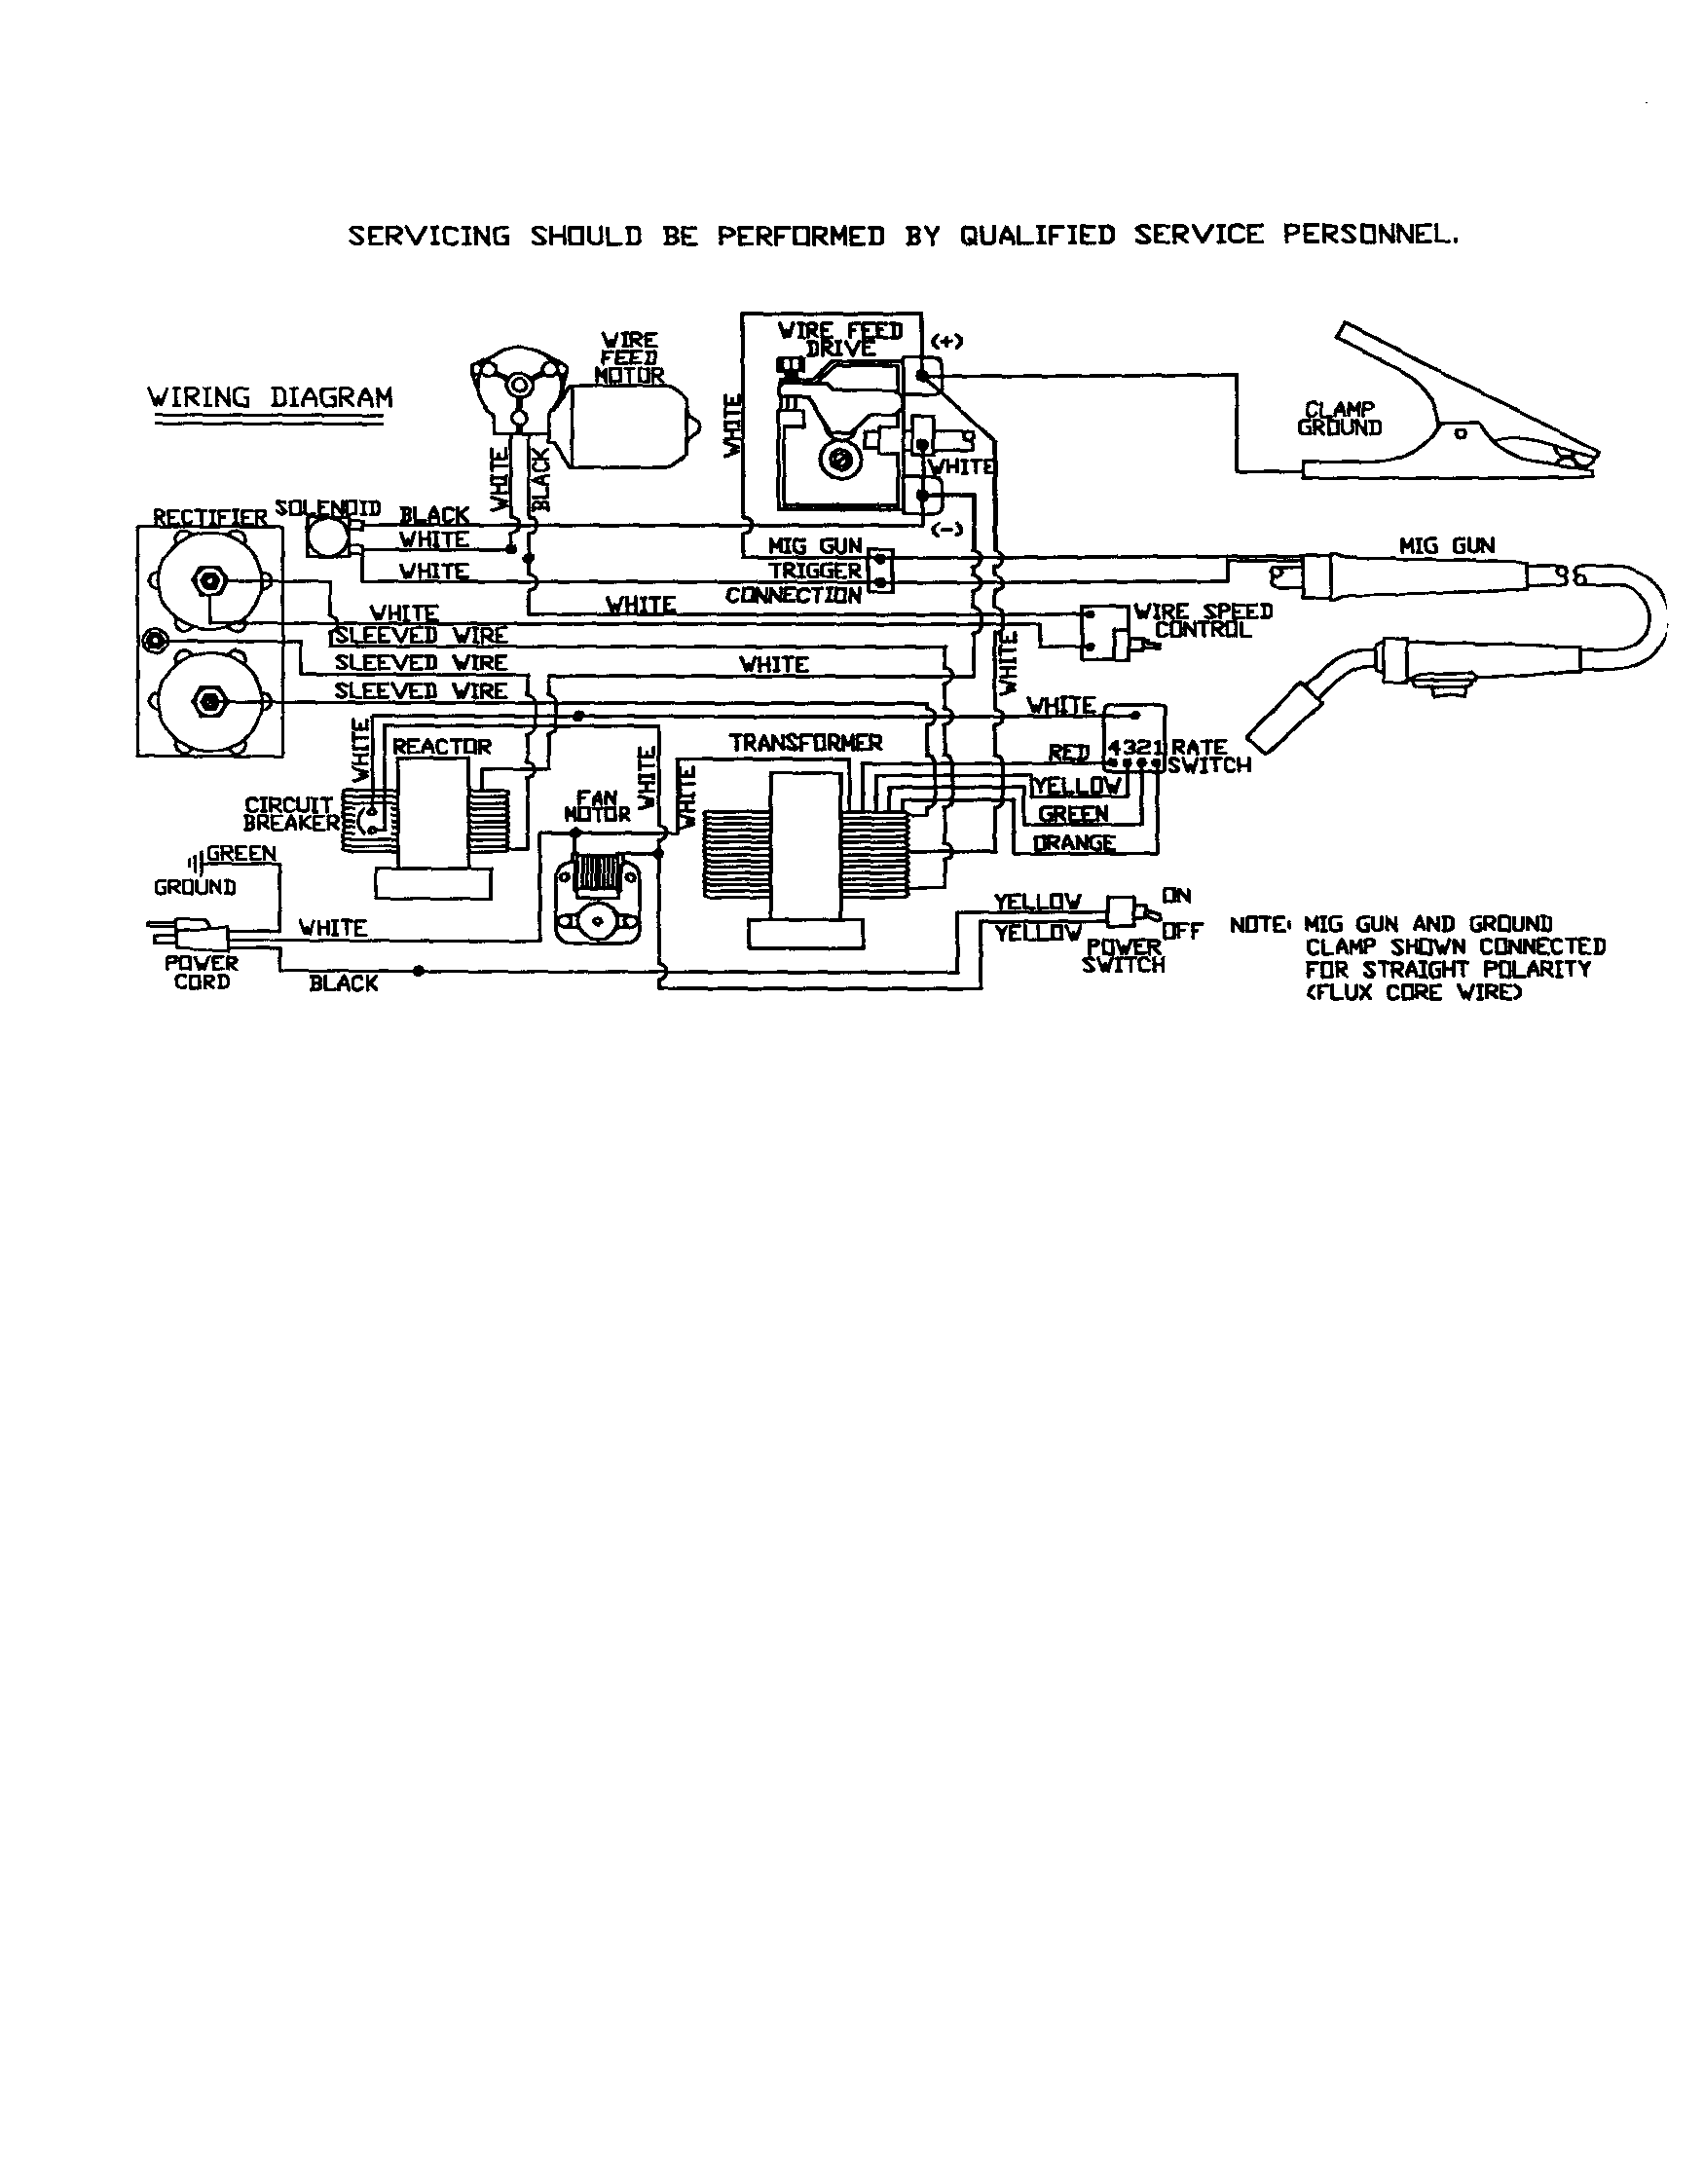 P0308100 00002 weldanpower 225 lincoln welder wiring diagram lincoln welder lincoln weldanpower g8000 wiring diagrams at gsmx.co